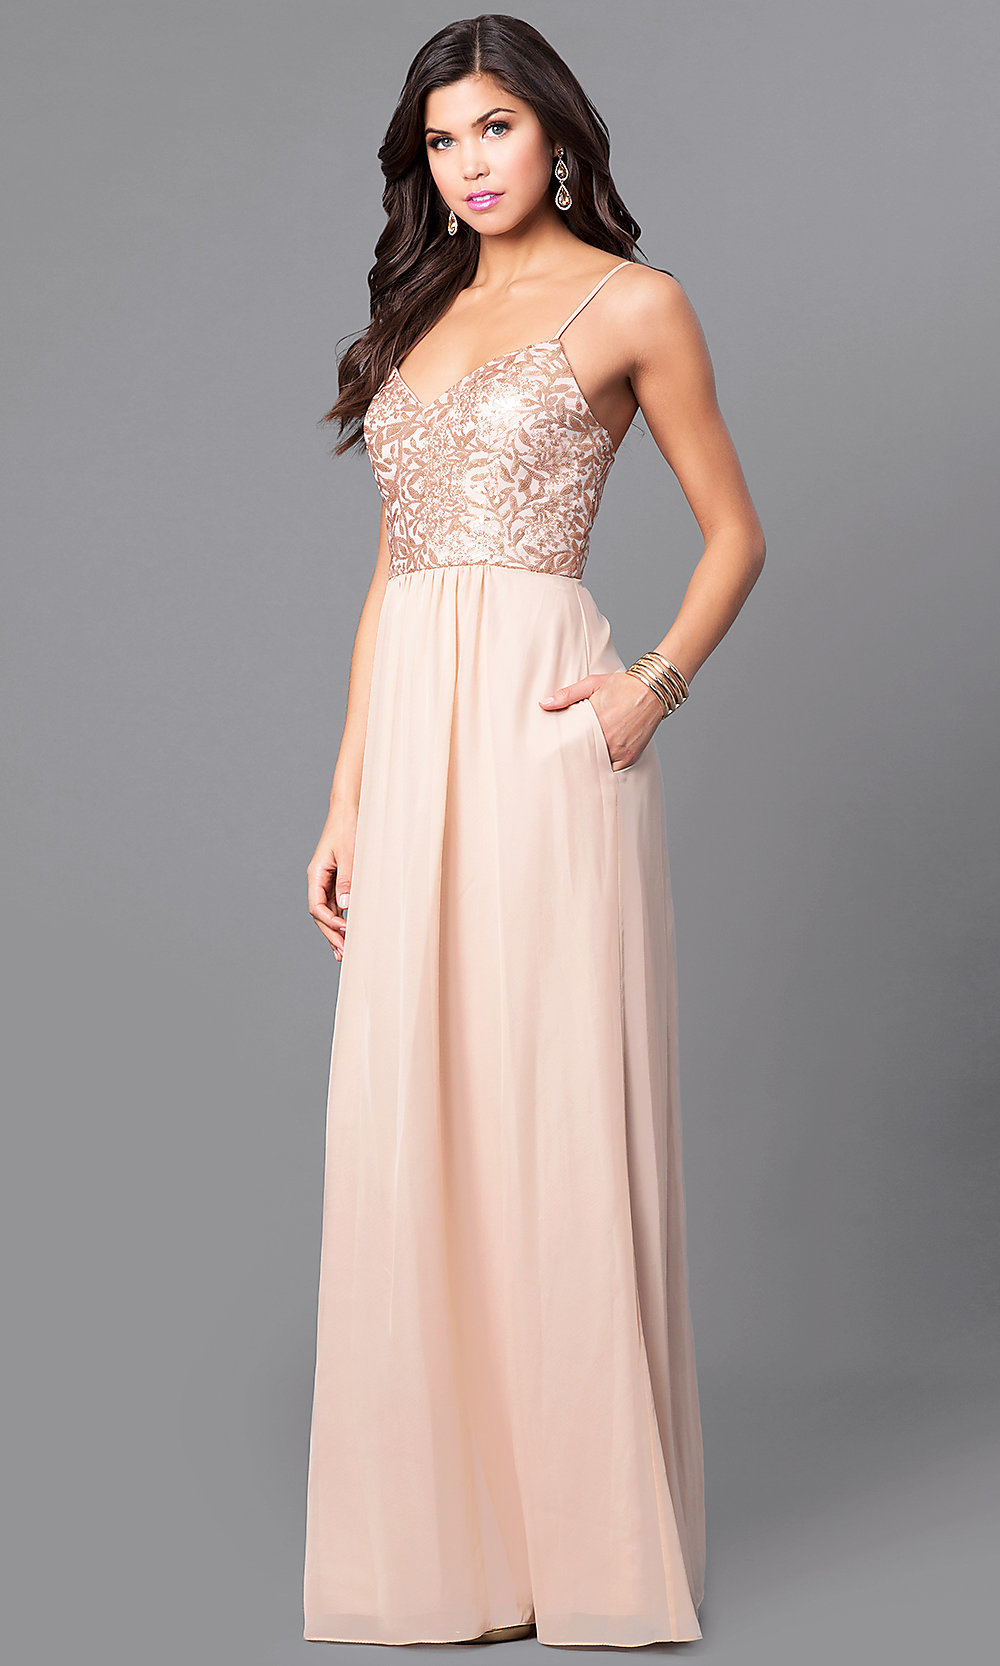 Gold Chiffon Prom Dress with Sequin Bodice - PromGirl